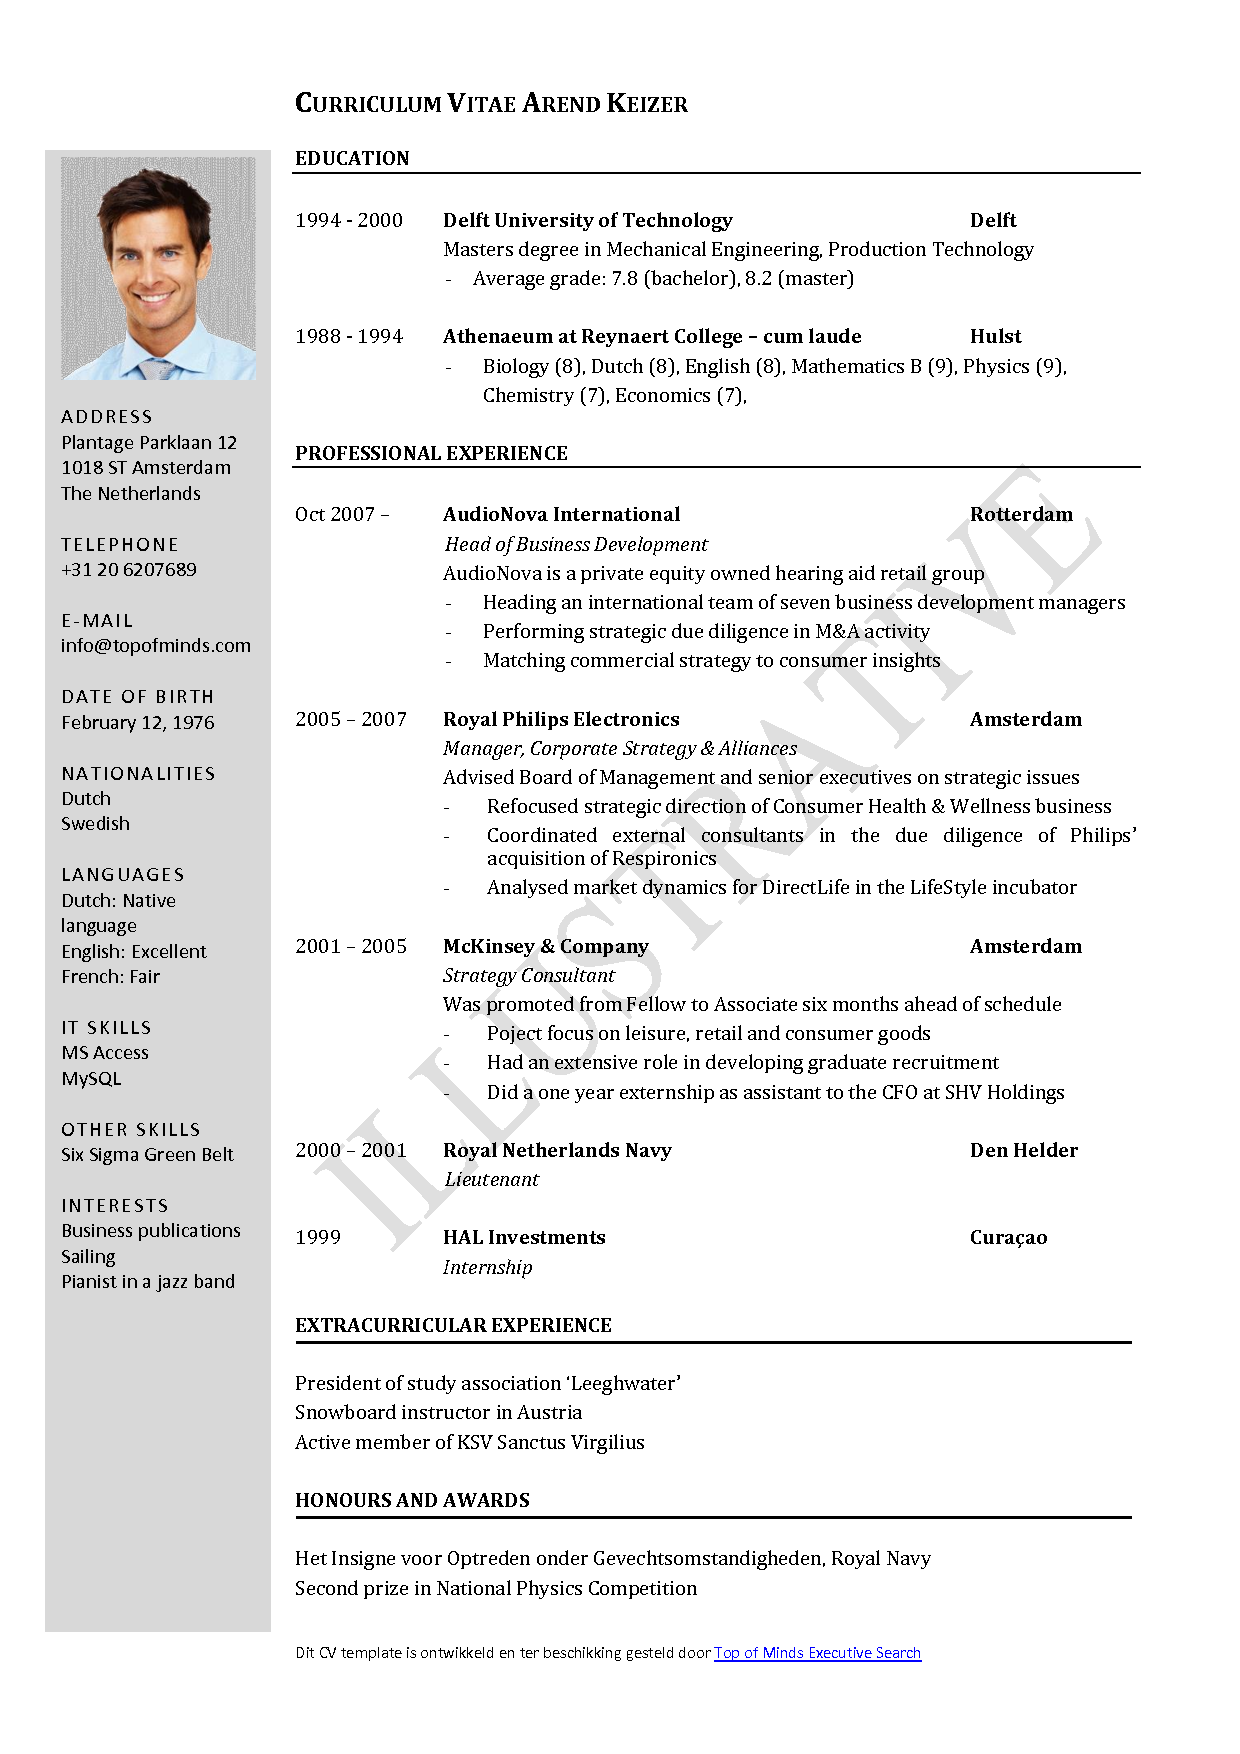 free curriculum vitae template word download cv template - Free Resume Templates Downloads Word